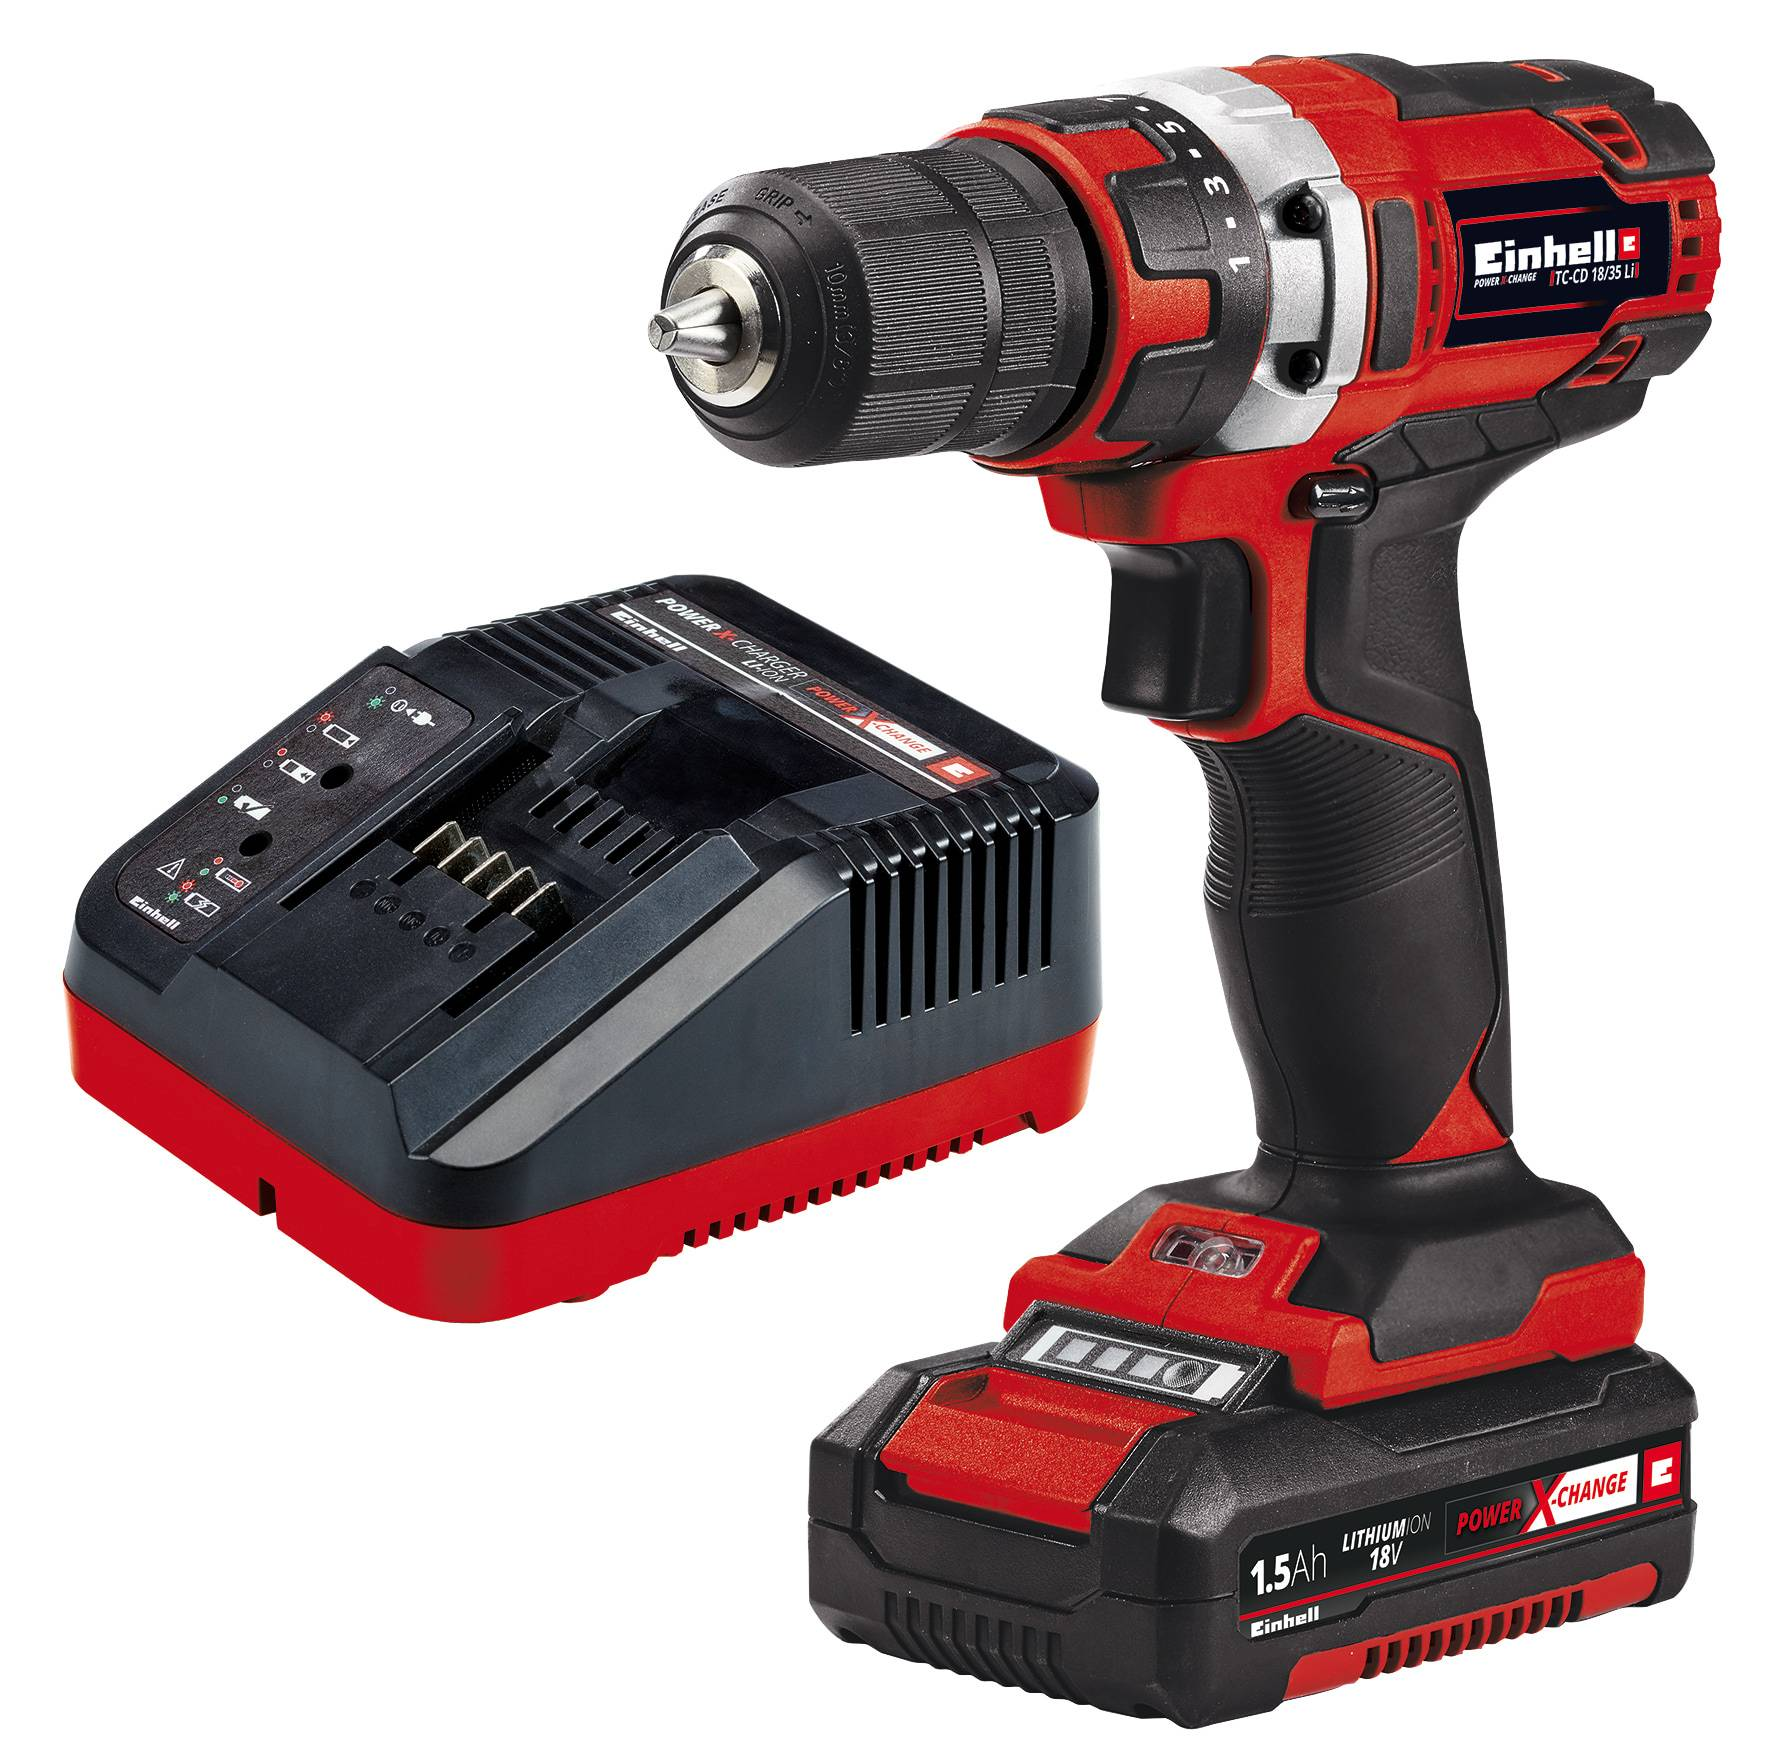 Einhell Power X-Change TC-CD 18/35 18V 1,5Ah akkuporakone